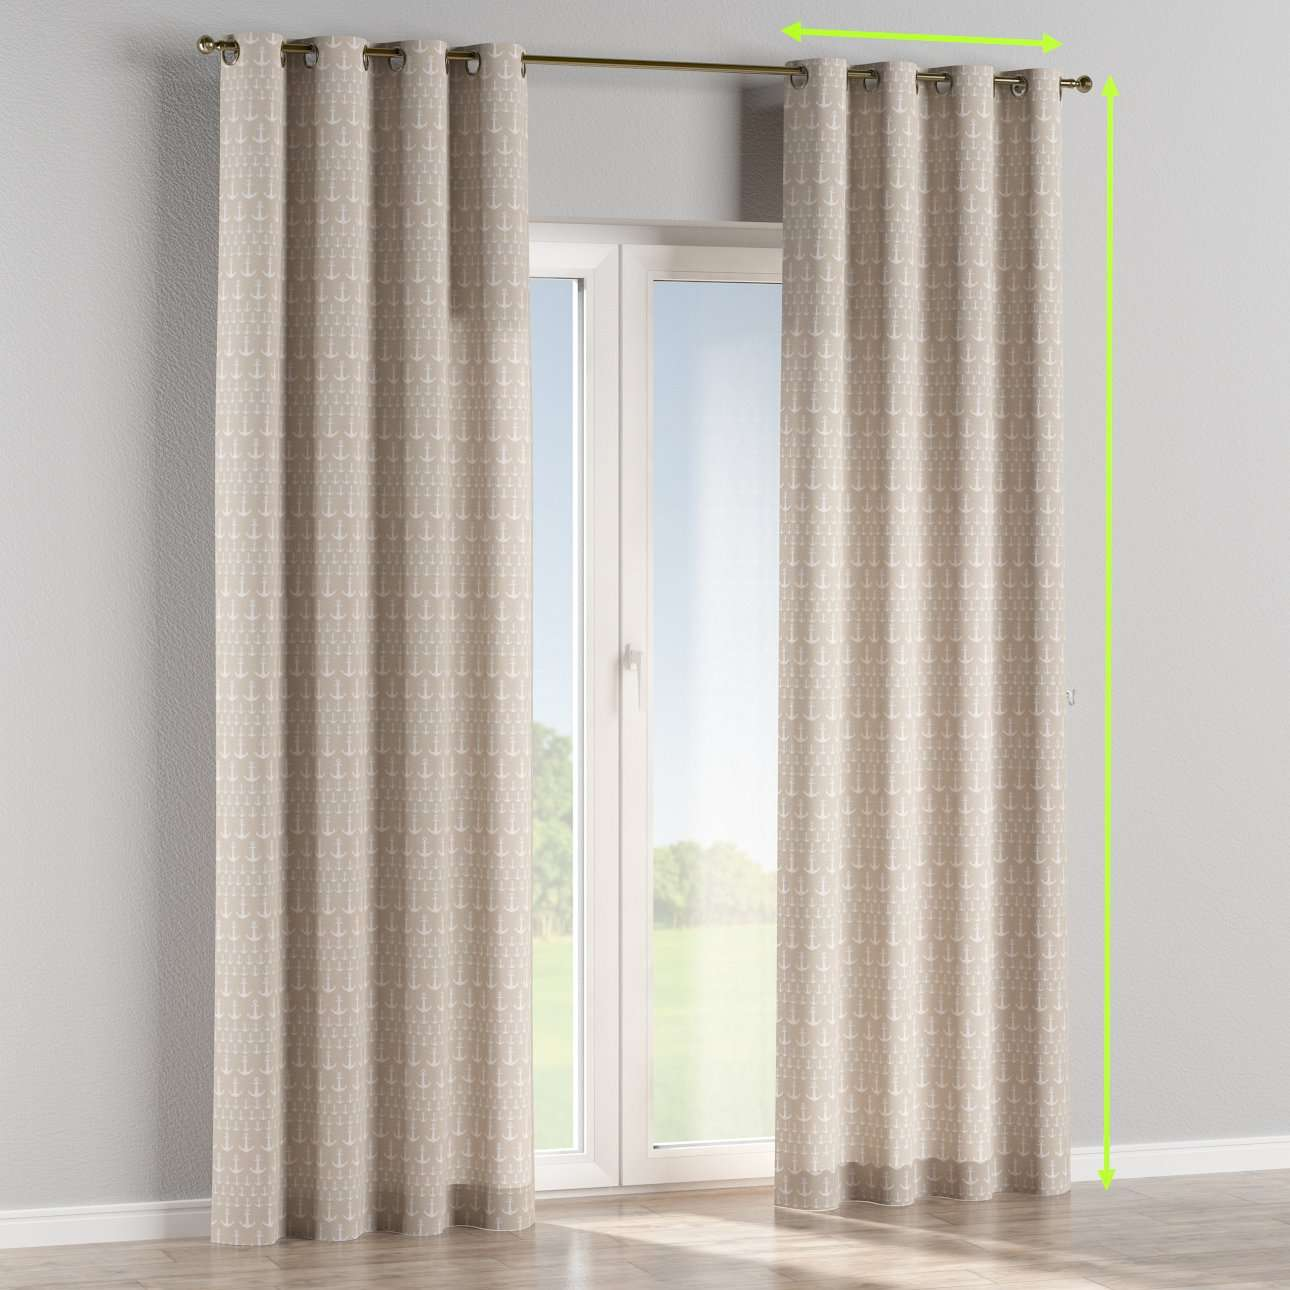 Eyelet lined curtains in collection Marina, fabric: 140-63